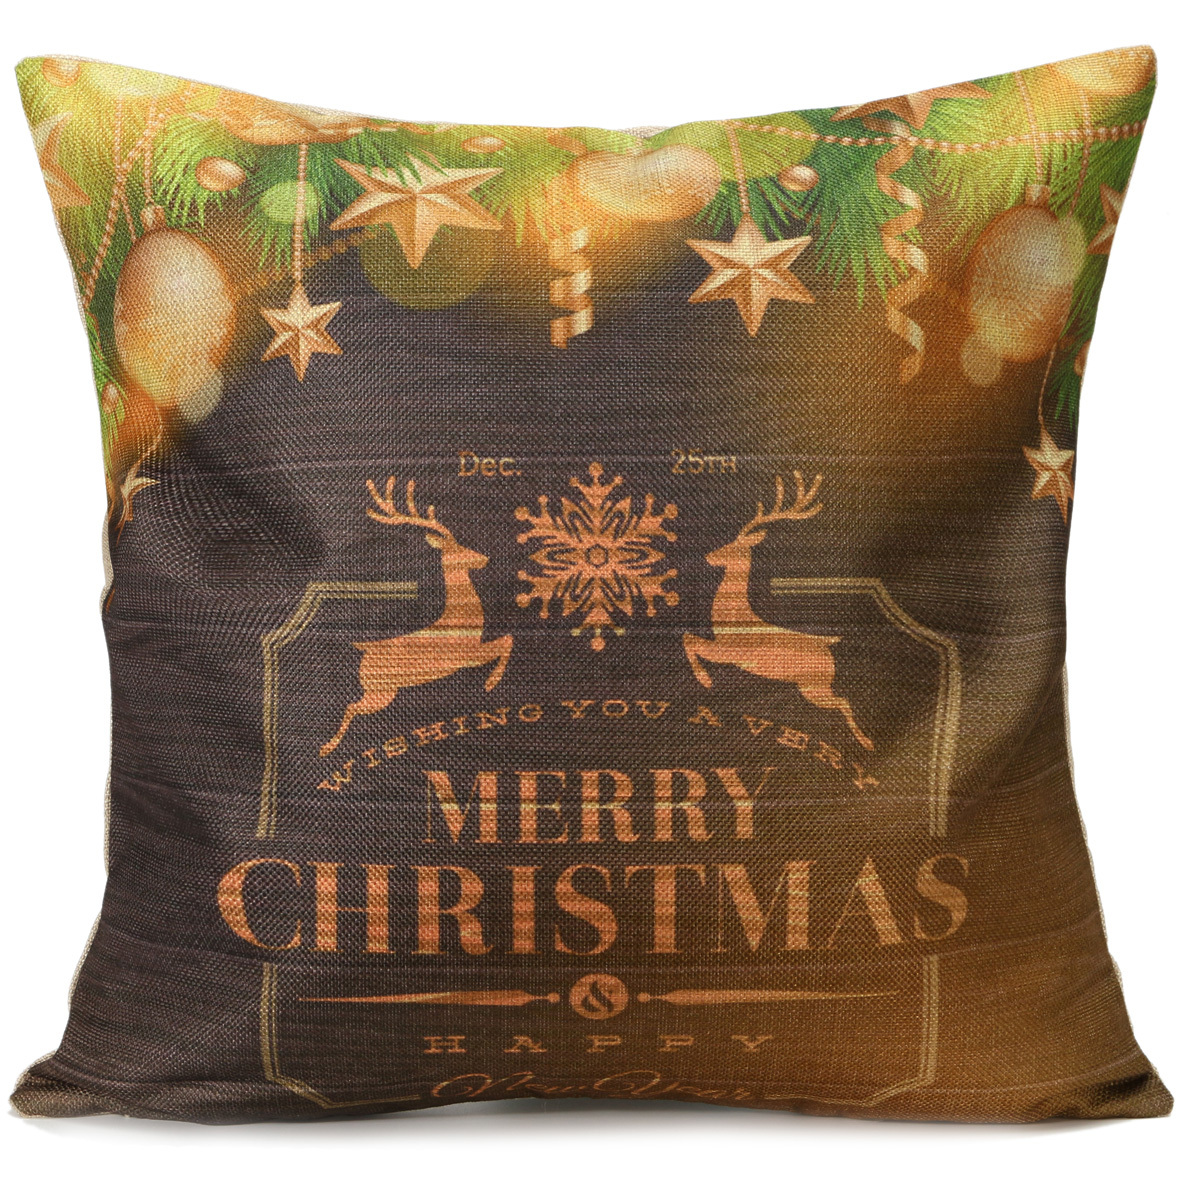 Christmas Decorative Pillow Cases : Christmas Series Cushion Cover Merry Xmas Decorative Square Pillow Case Throw eBay